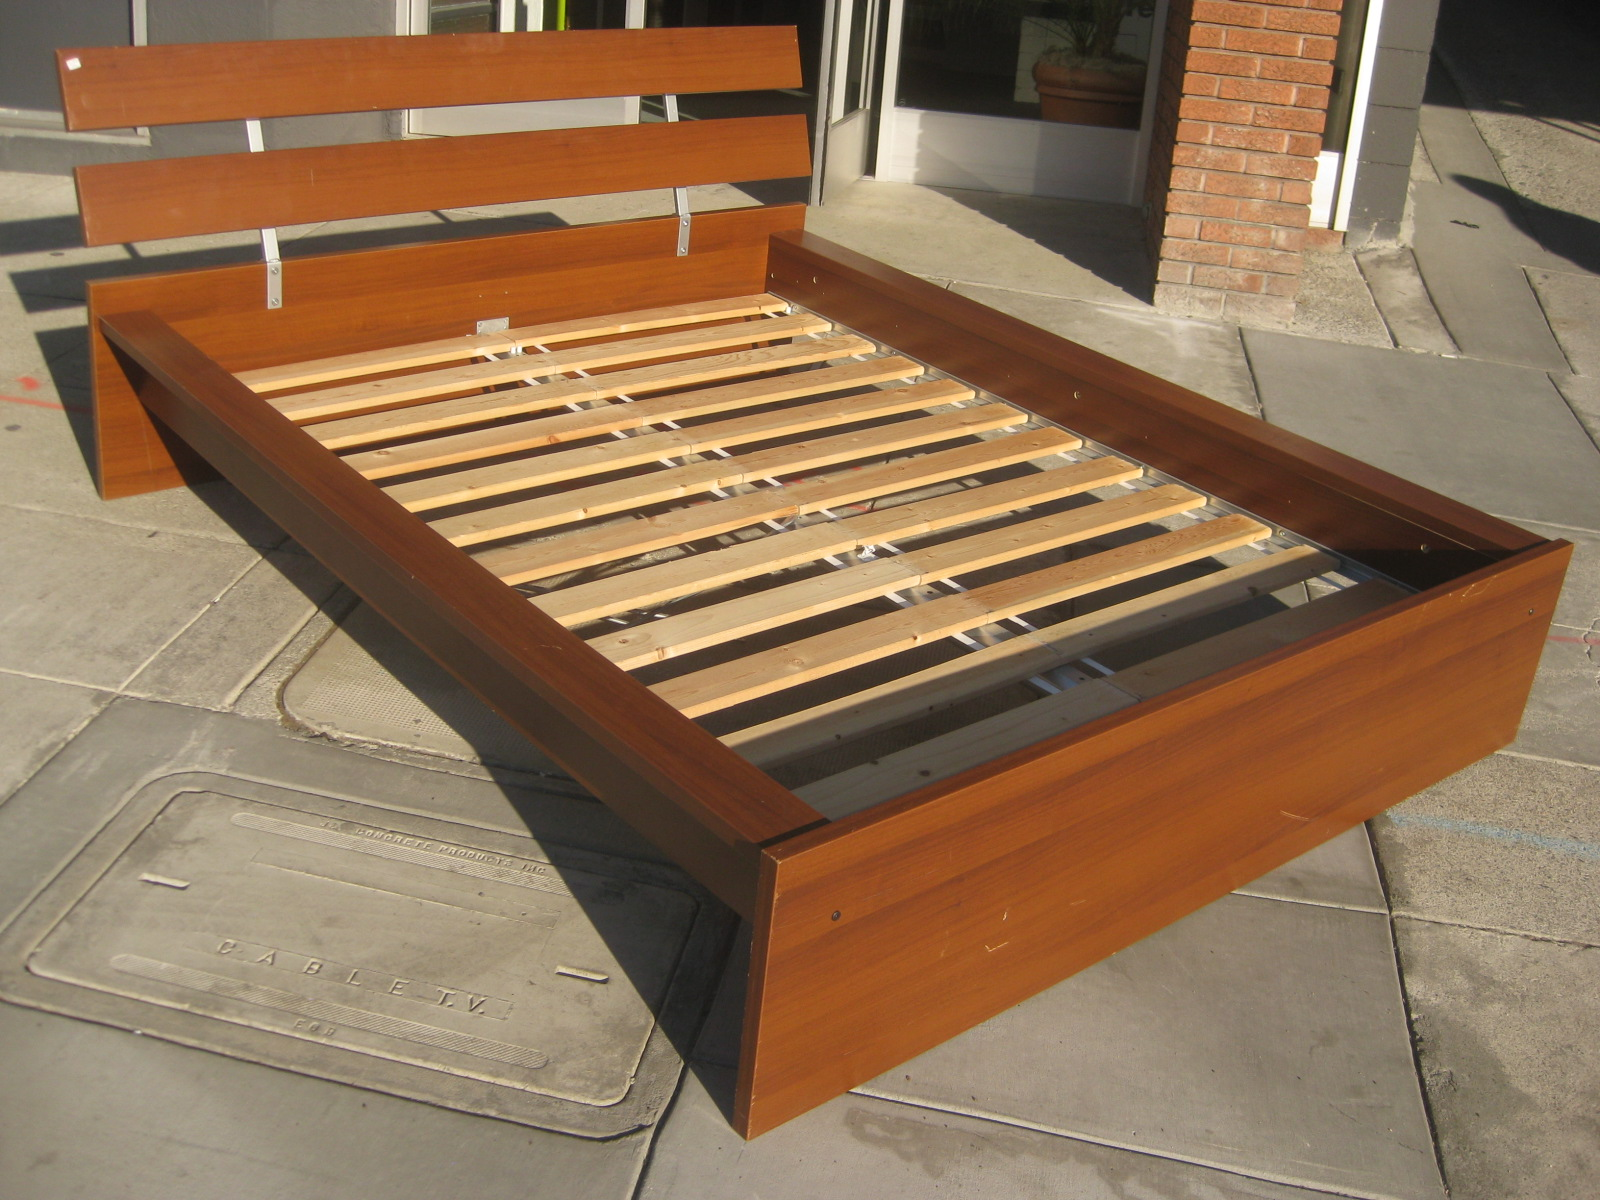 how to build a queen size platform bed frame | Quick Woodworking ...